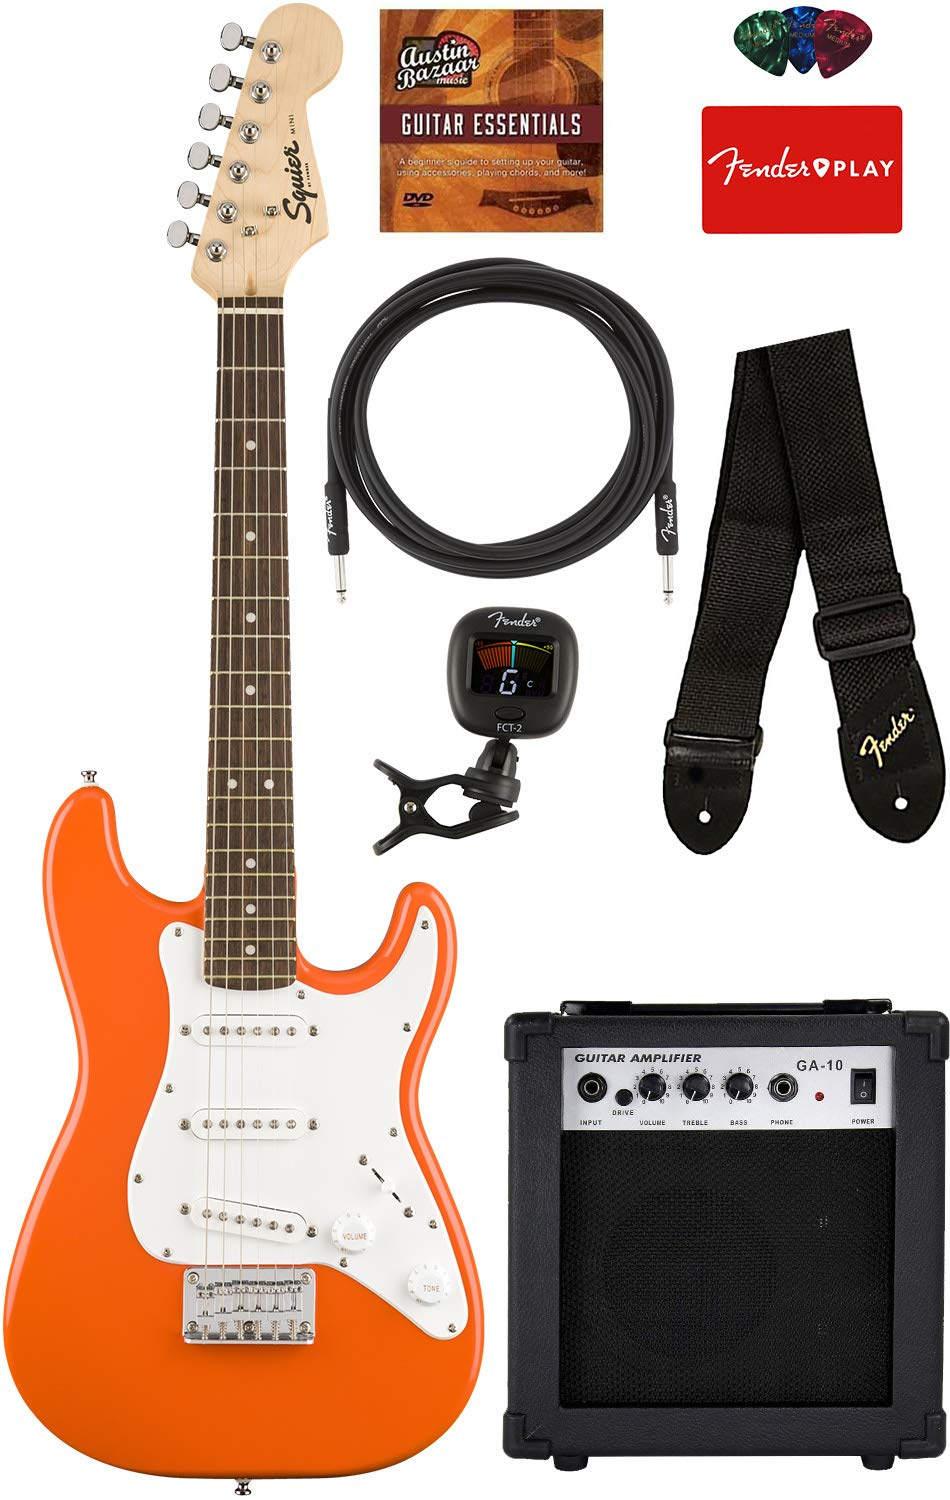 Squier by Fender Mini Strat Electric Guitar - Competition Orange Bundle with Amplifier, Instrument Cable, Tuner, Strap, Picks, Fender Play Online Lessons, and Austin Bazaar Instructional DVD by Austin Bazaar